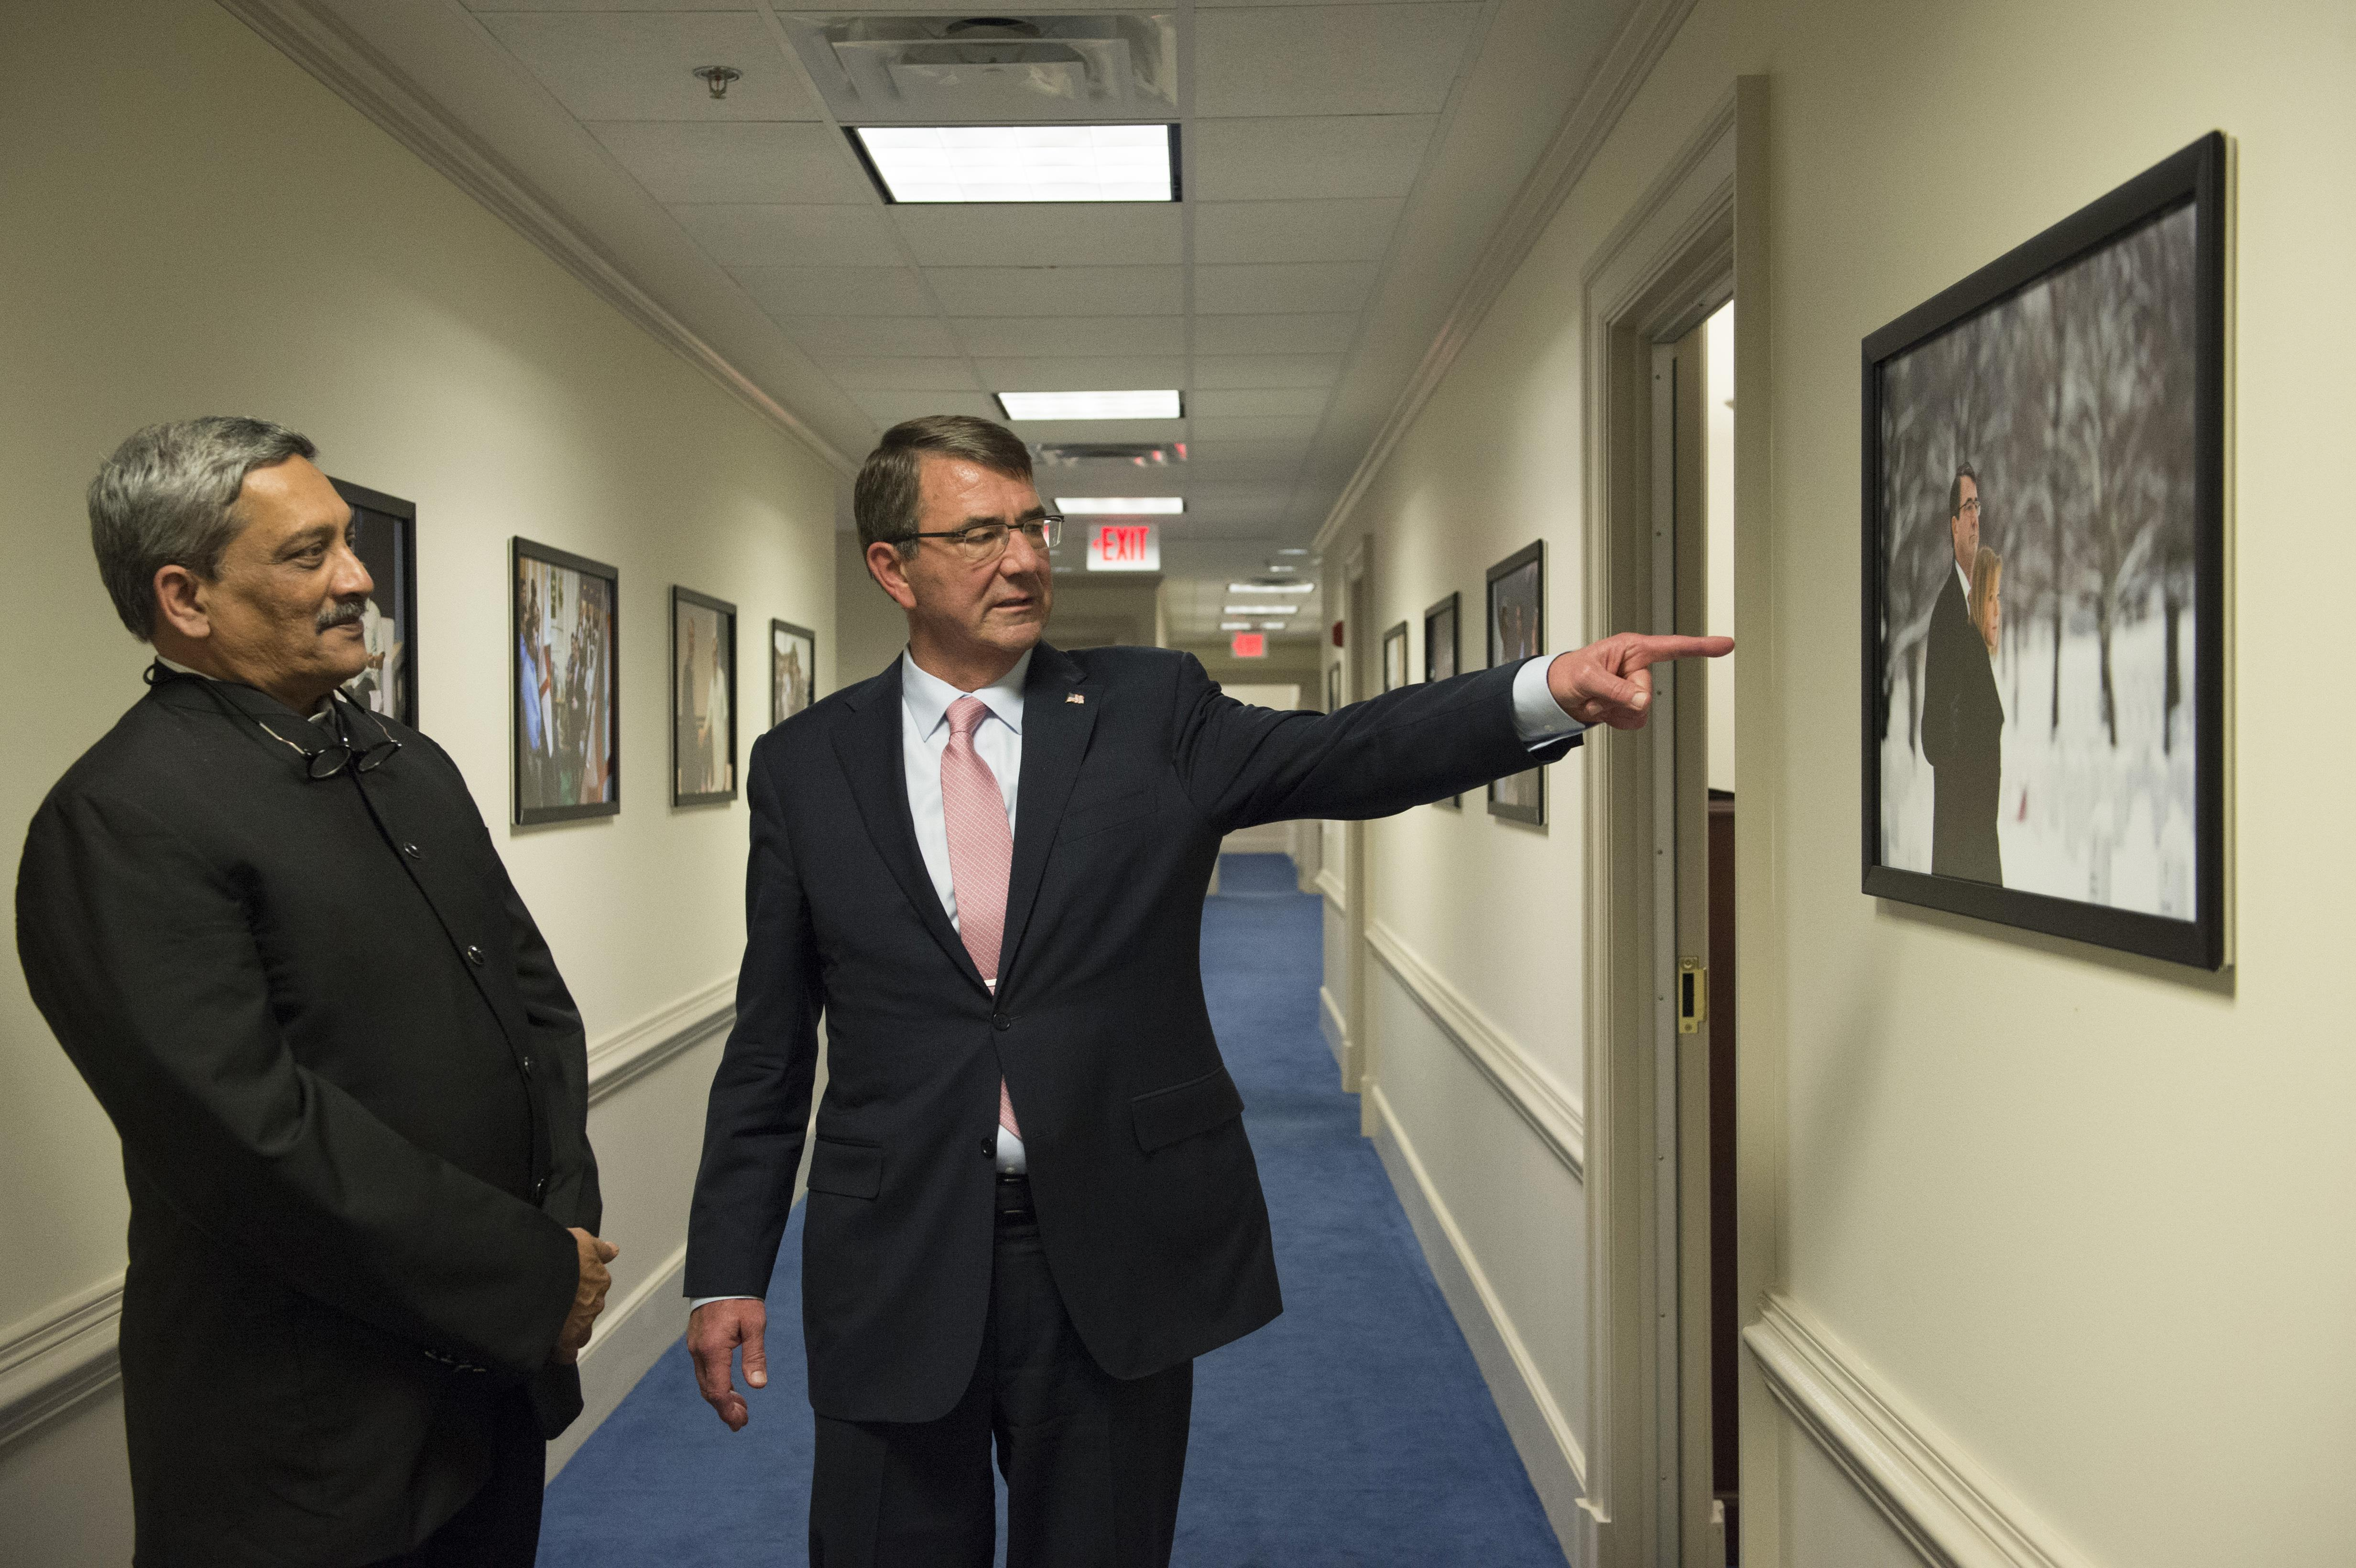 Indian Minister of Defense Manohar Parrikar and Secretary of Defense Ash Carter in the Pentagon. DoD Photo